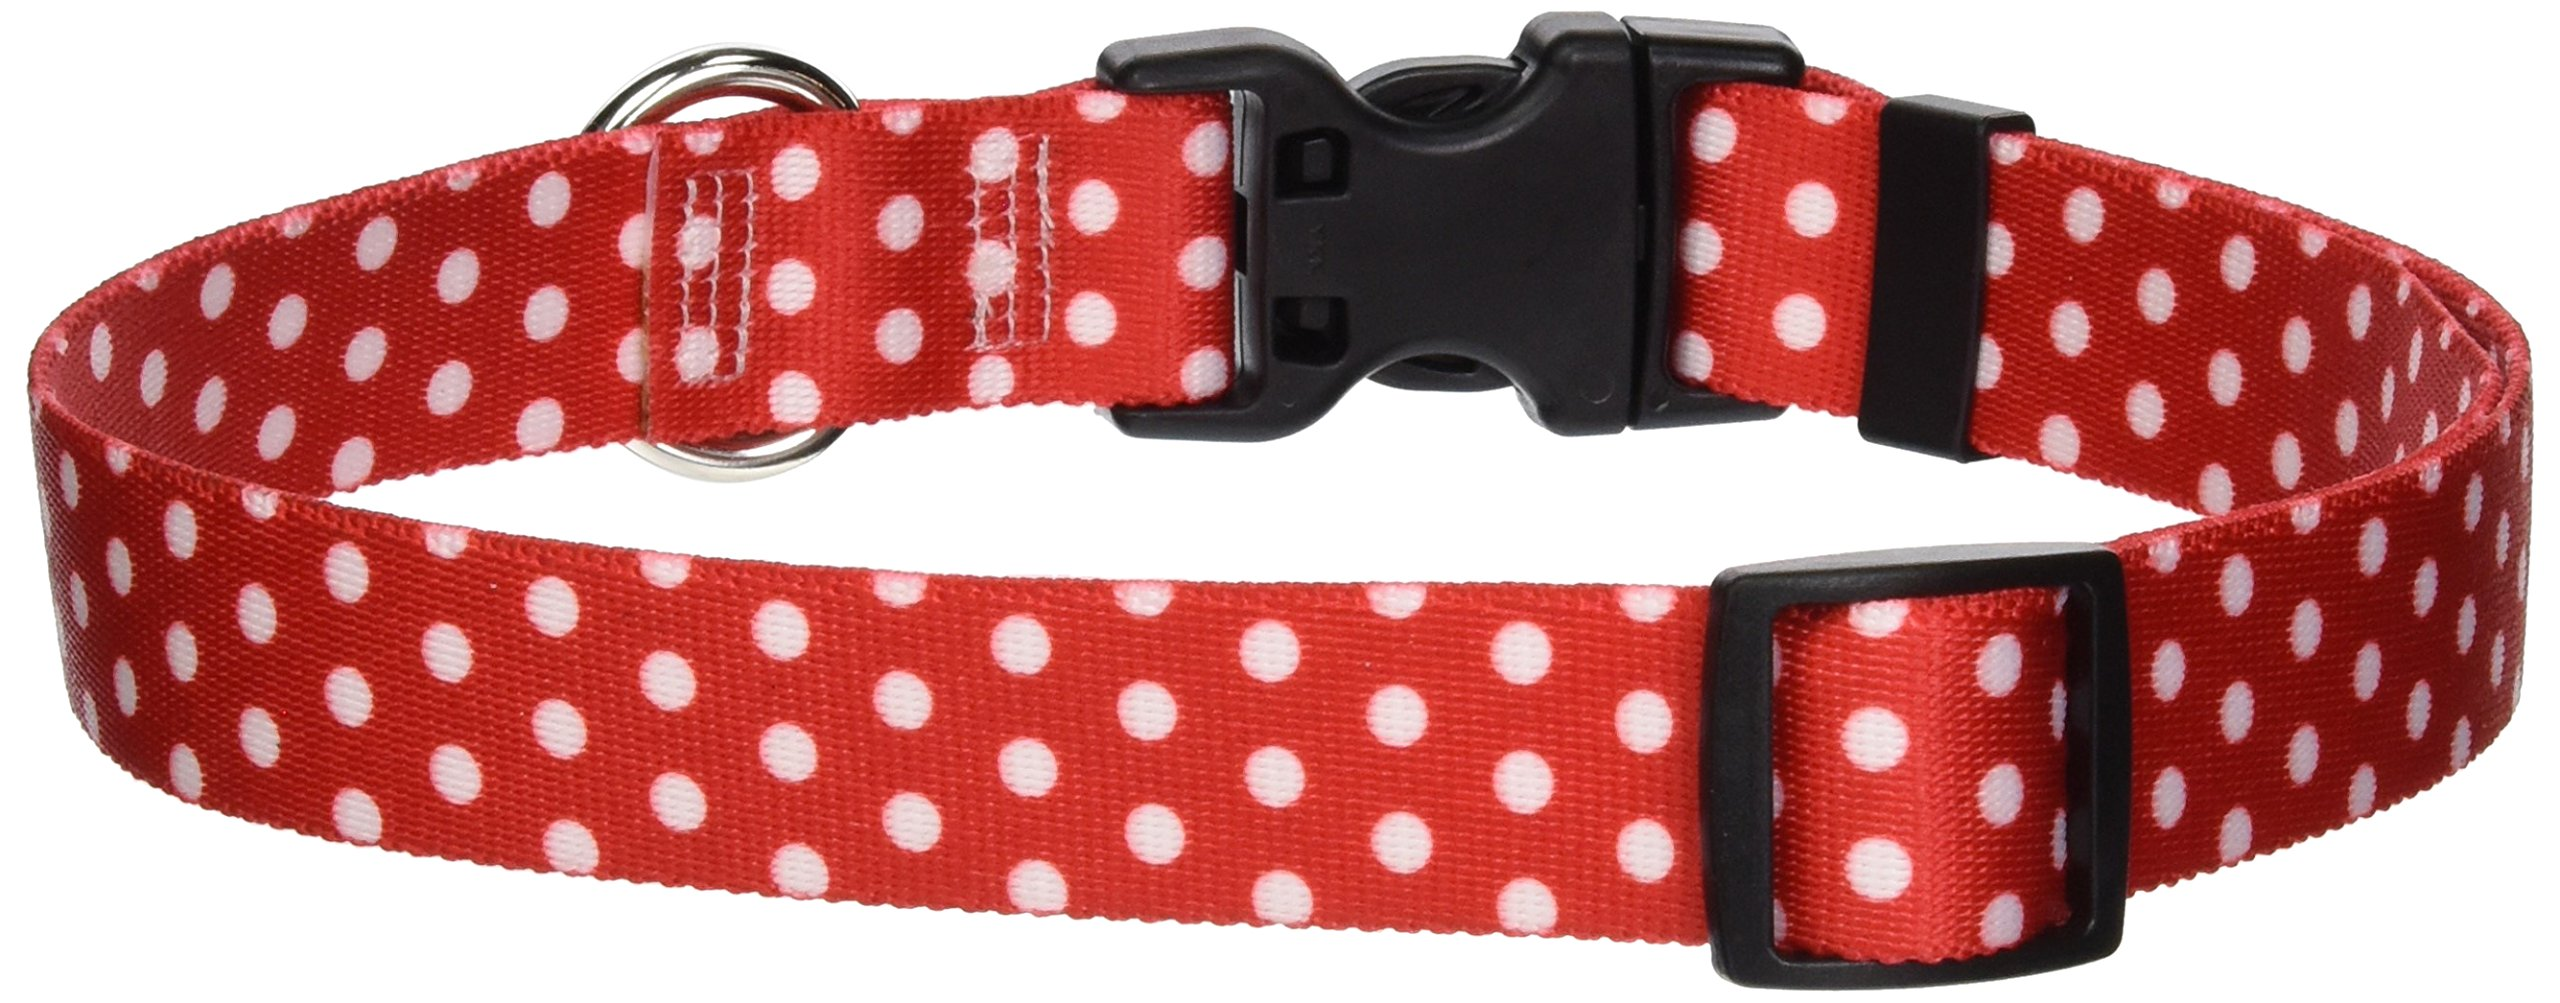 Yellow Dog Design Standard Easy-Snap Collar, New Red Polka Dot, Large 18'' - 28''